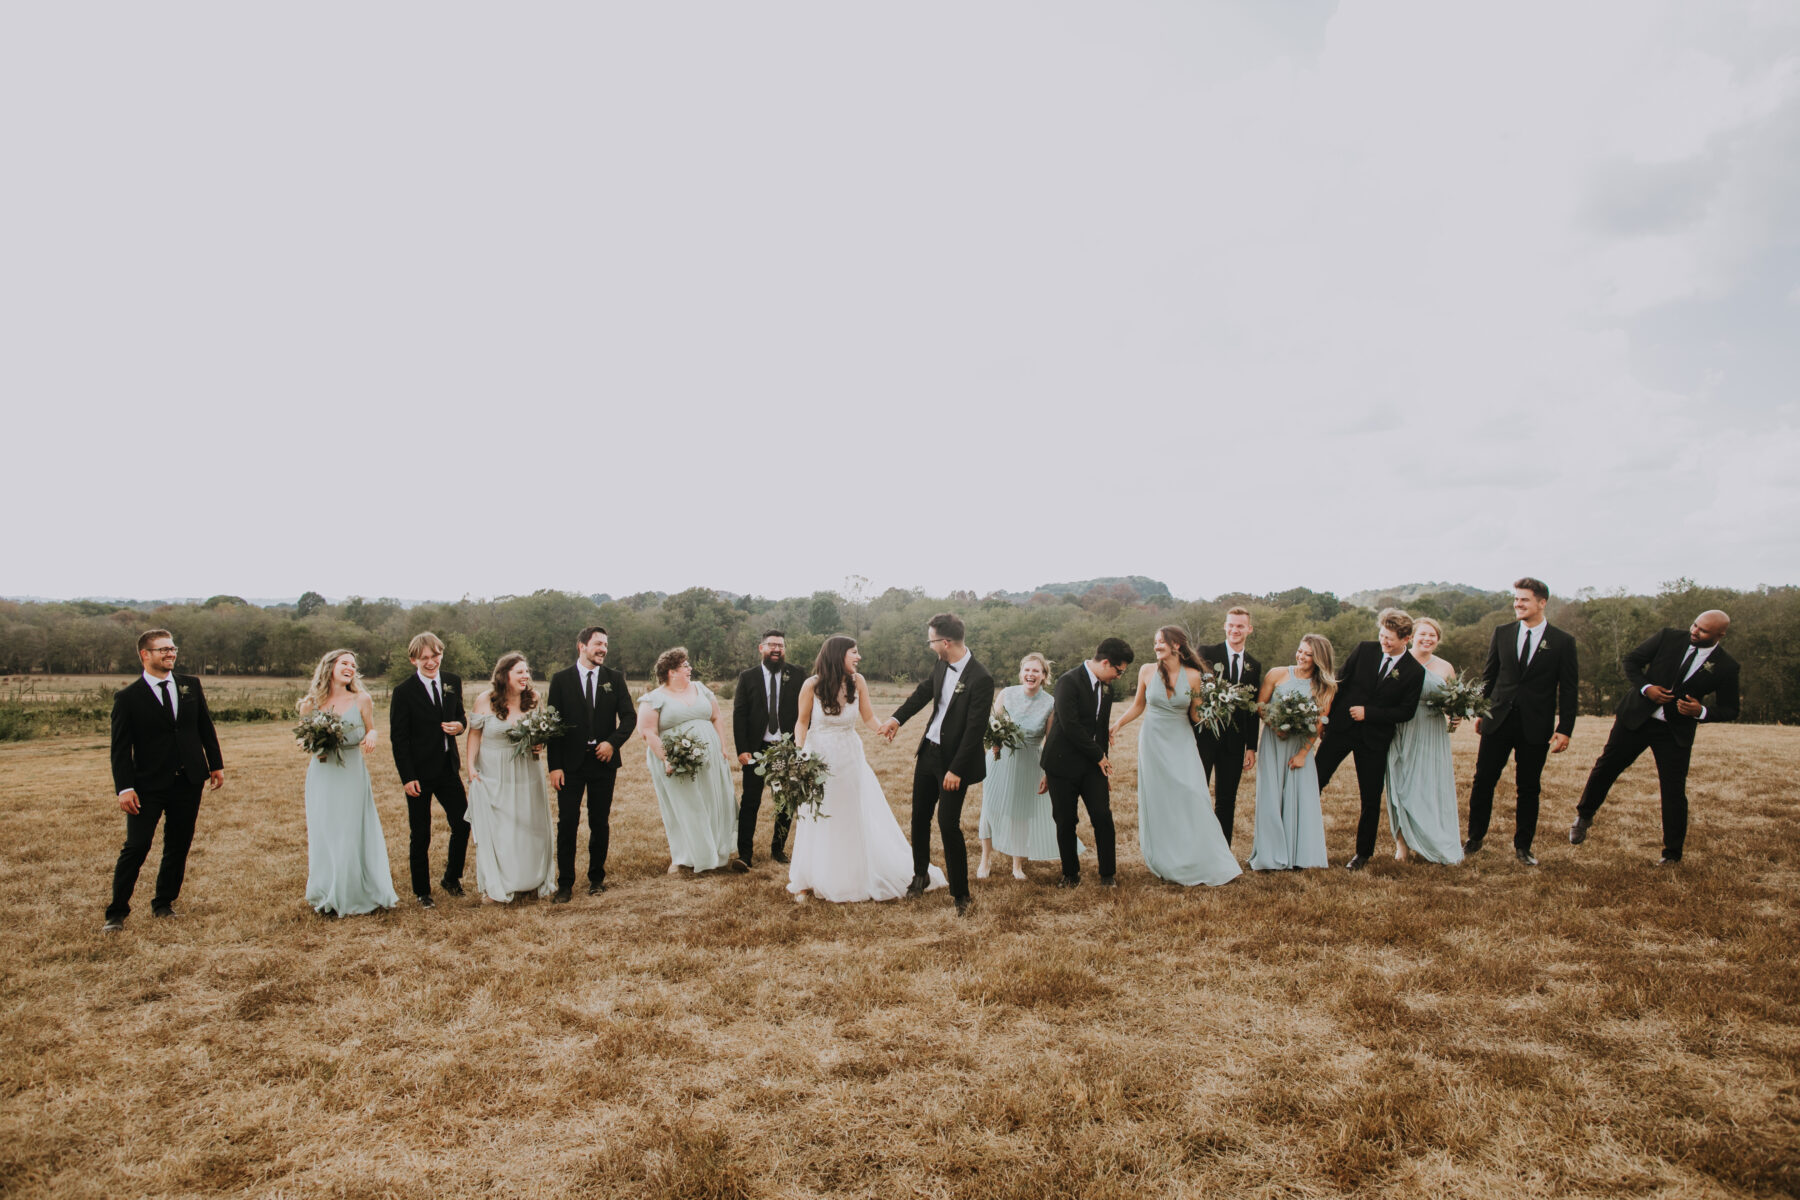 Wedding party photos: Nashville Wedding with Beautiful Views by Teale Photography featured on Nashville Bride Guide